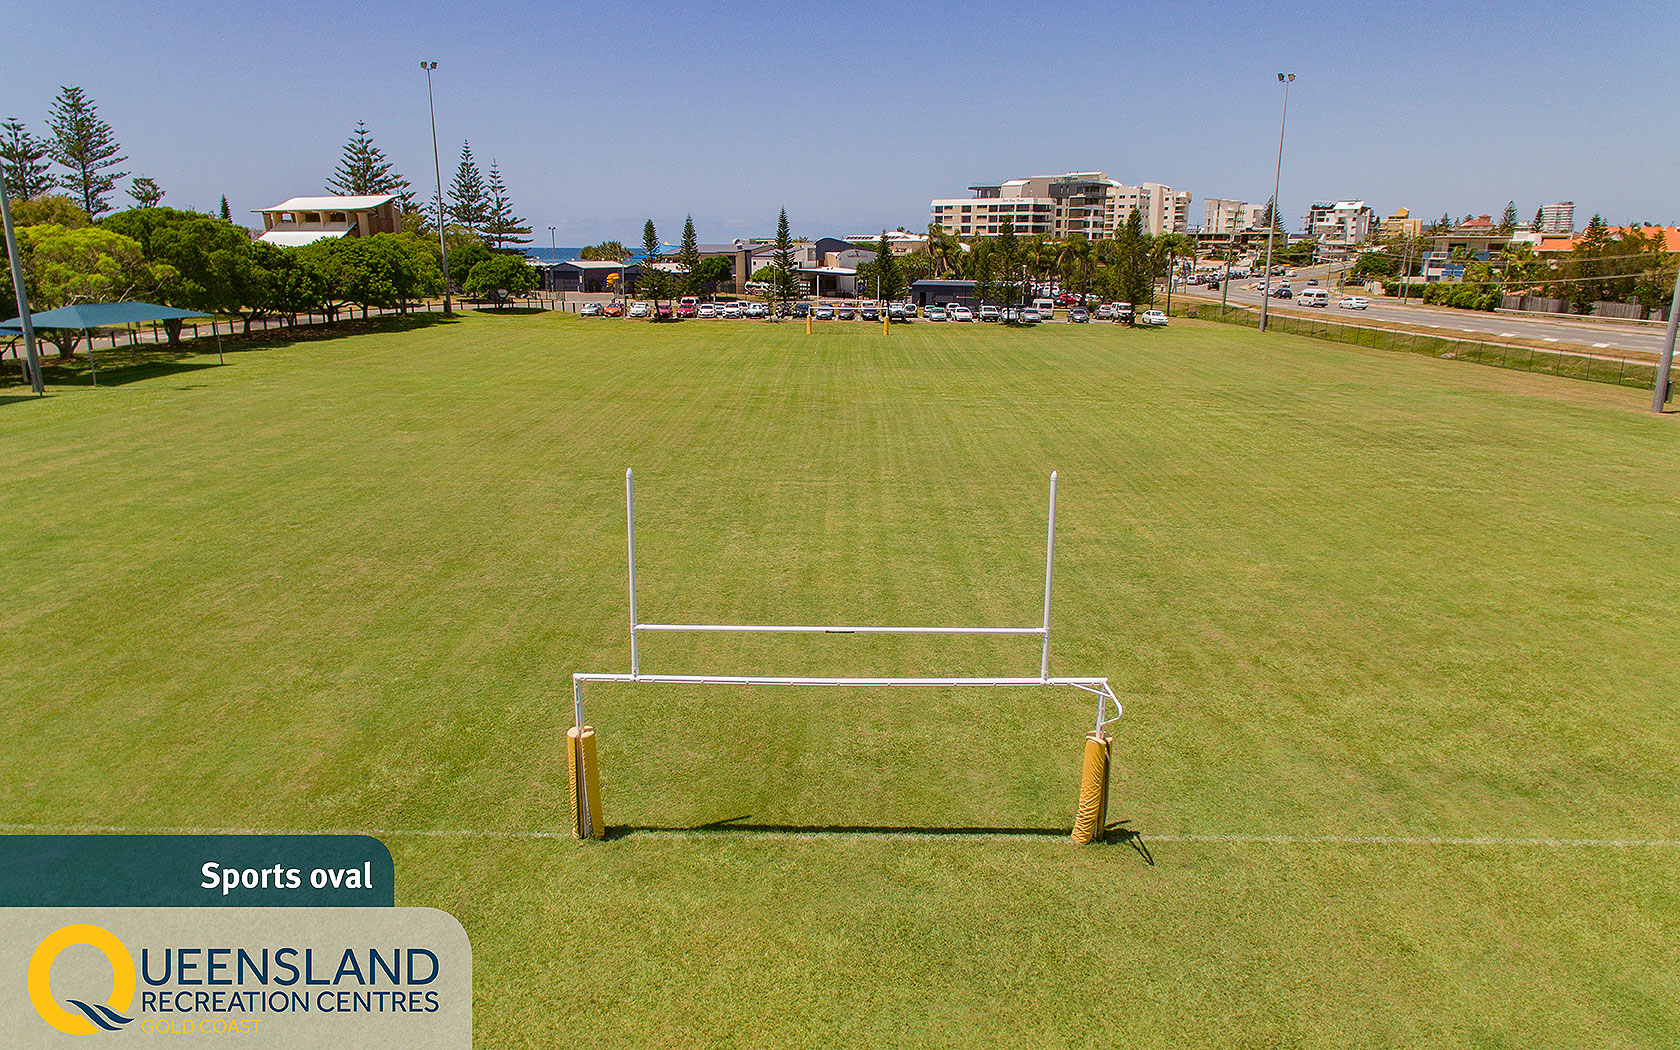 Wide grassy sporting oval with padded goal posts at the Gold Coast Recreation Centre